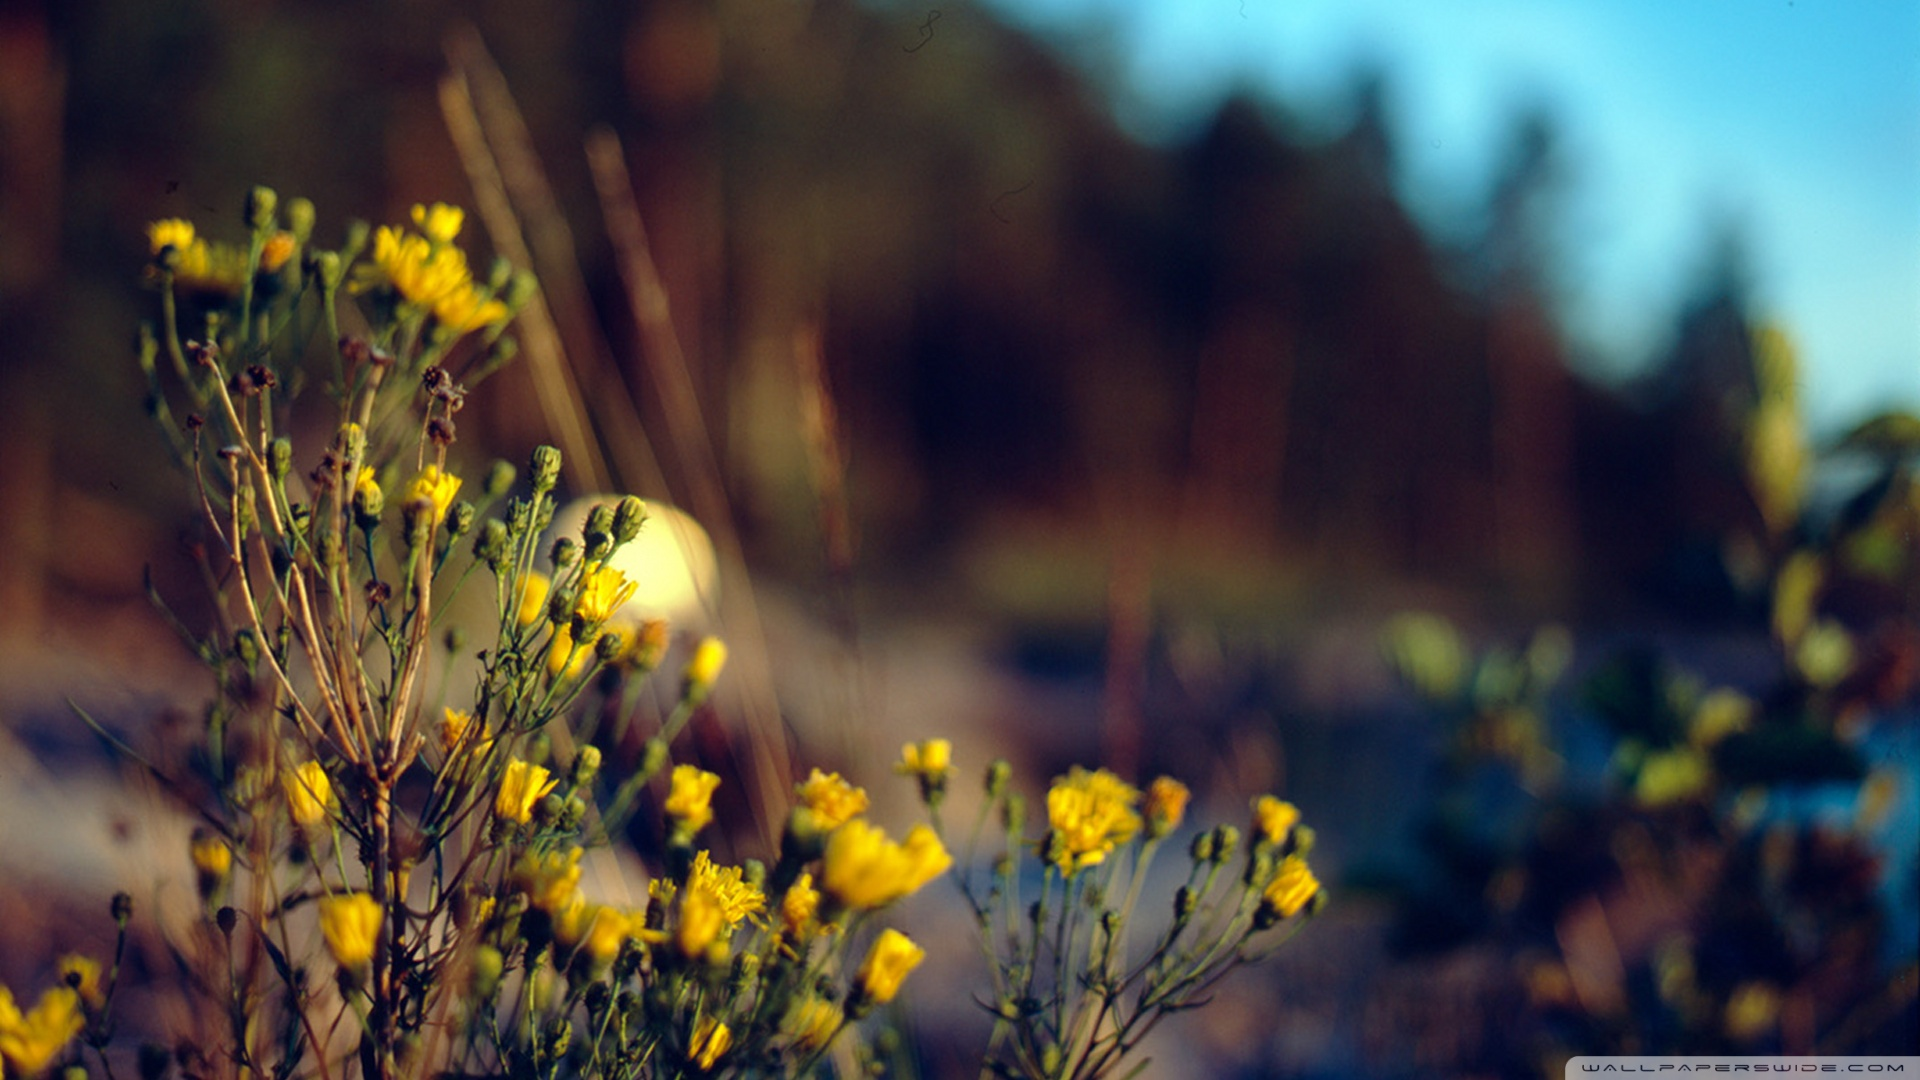 Professional Photography Nature Background Hd 1920x1080 Download Hd Wallpaper Wallpapertip